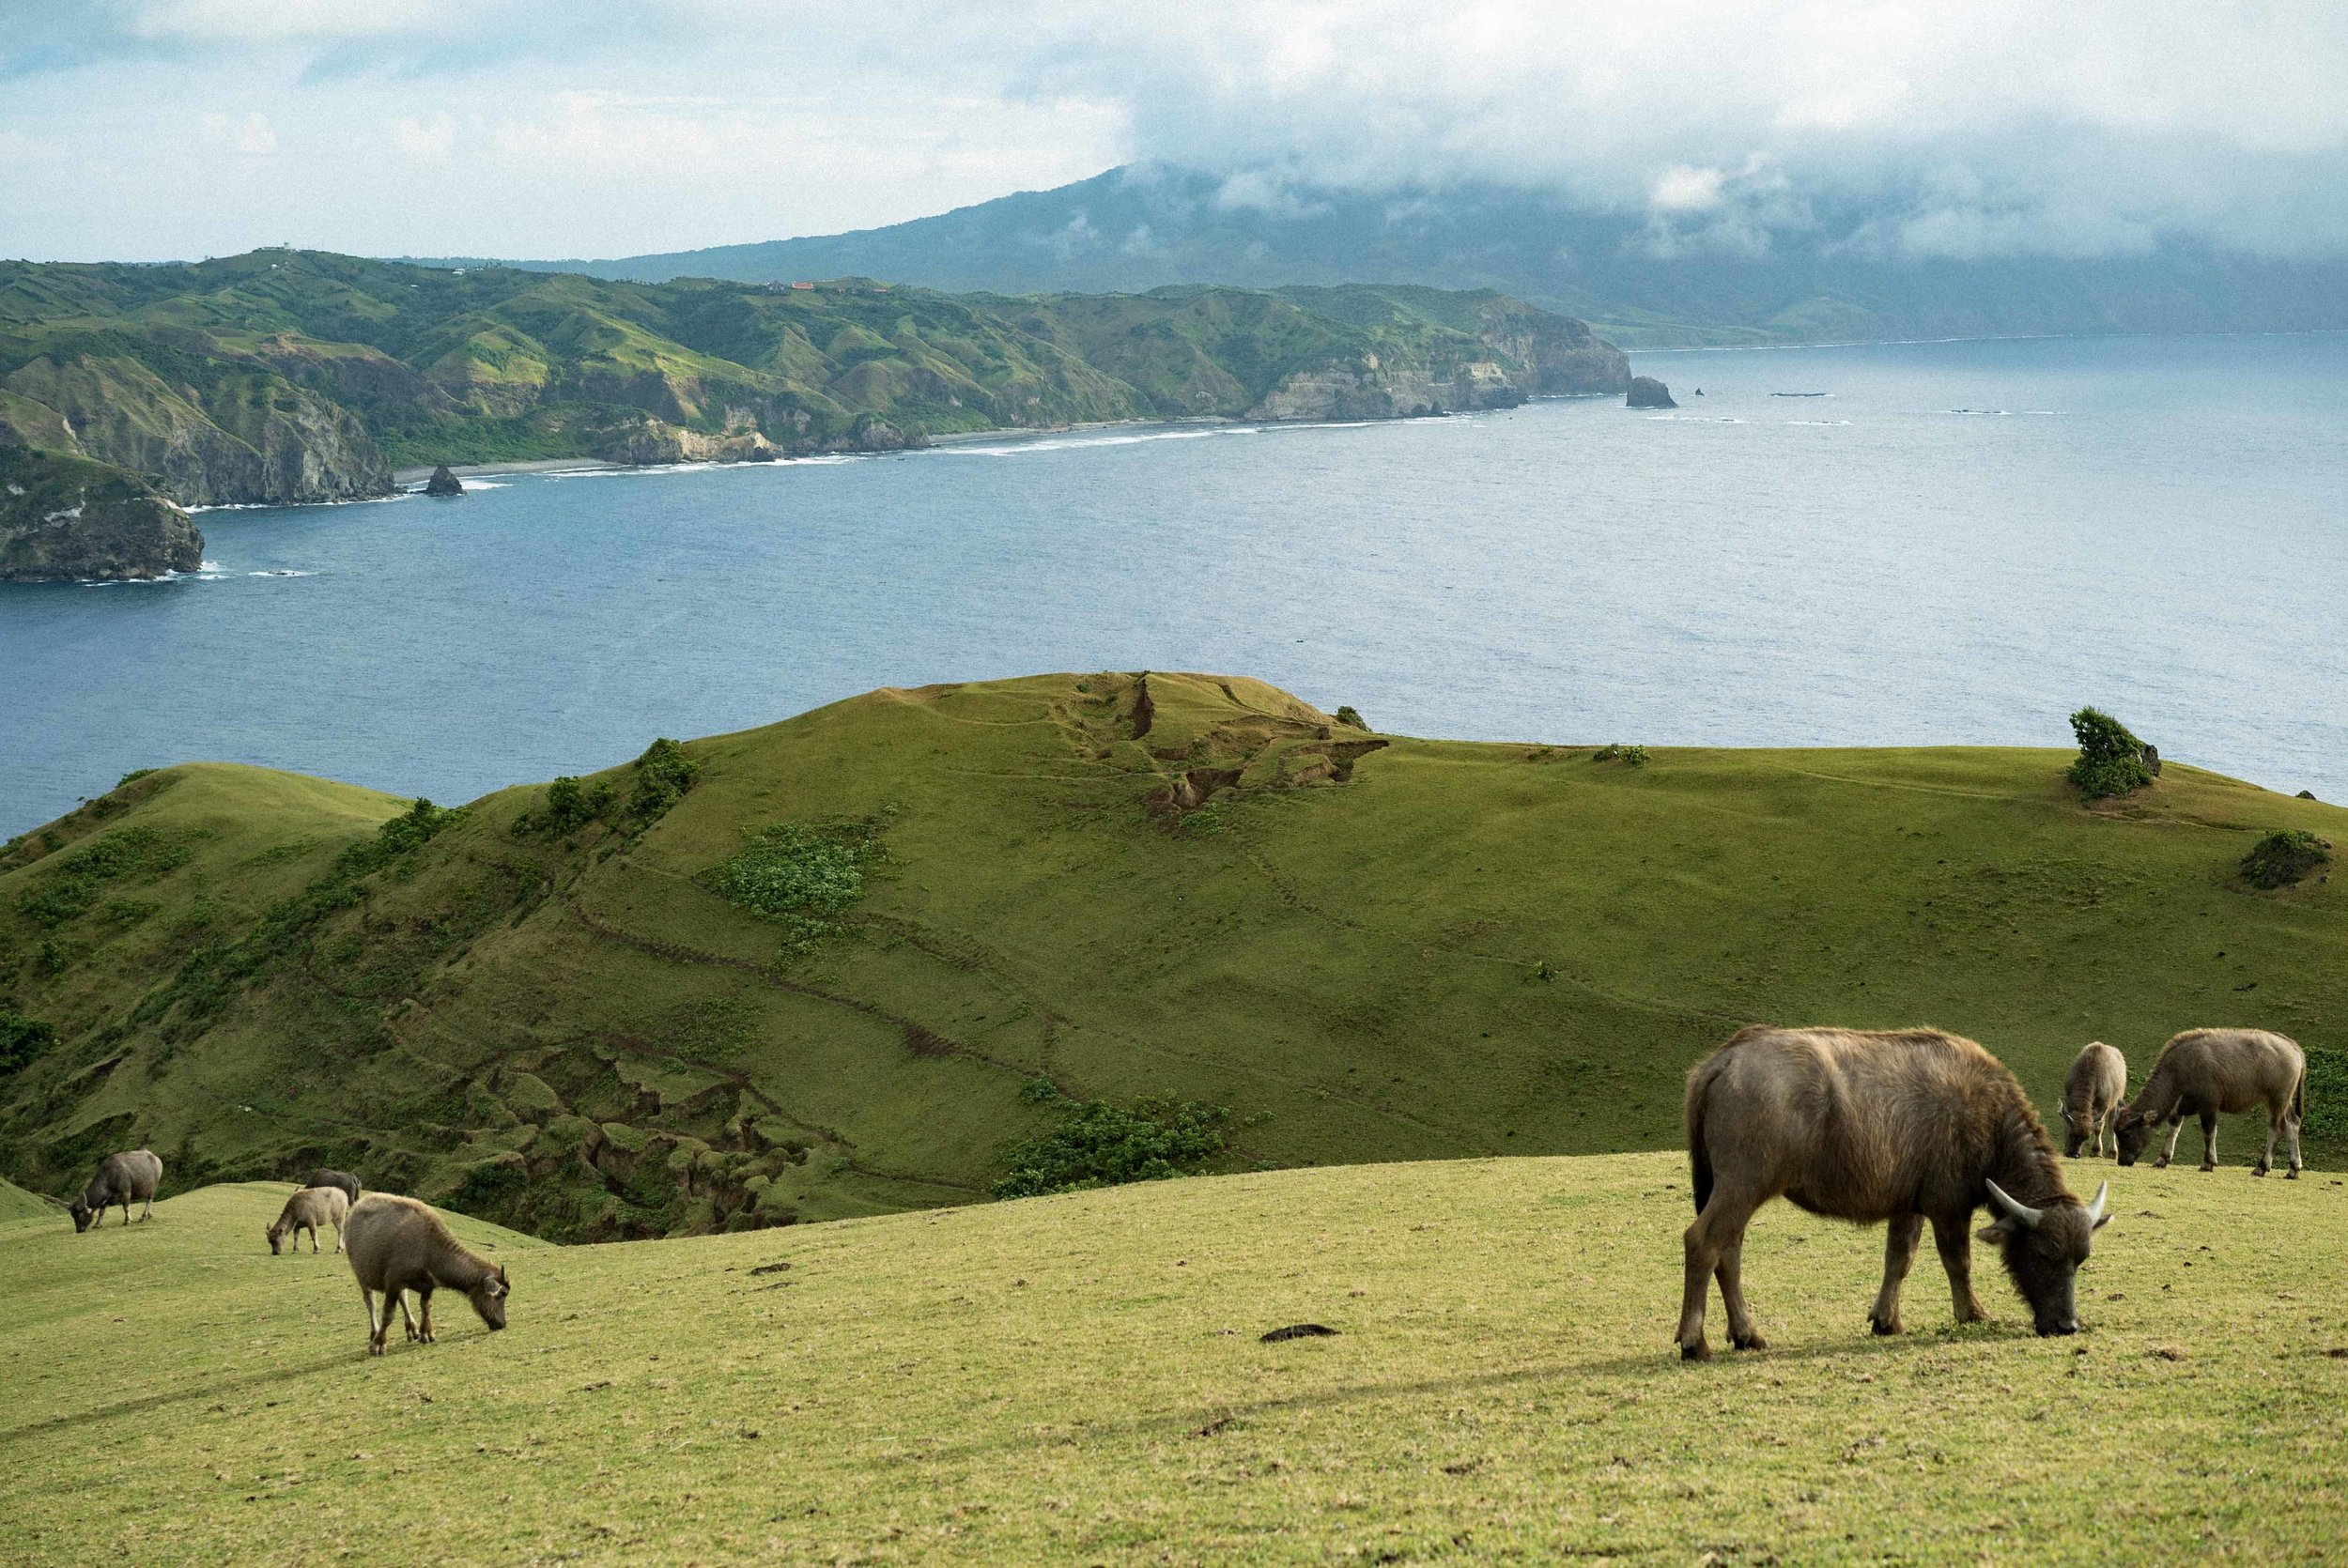 Water buffalos or  carabaos  graze freely on Marlboro Hills, Batanes.